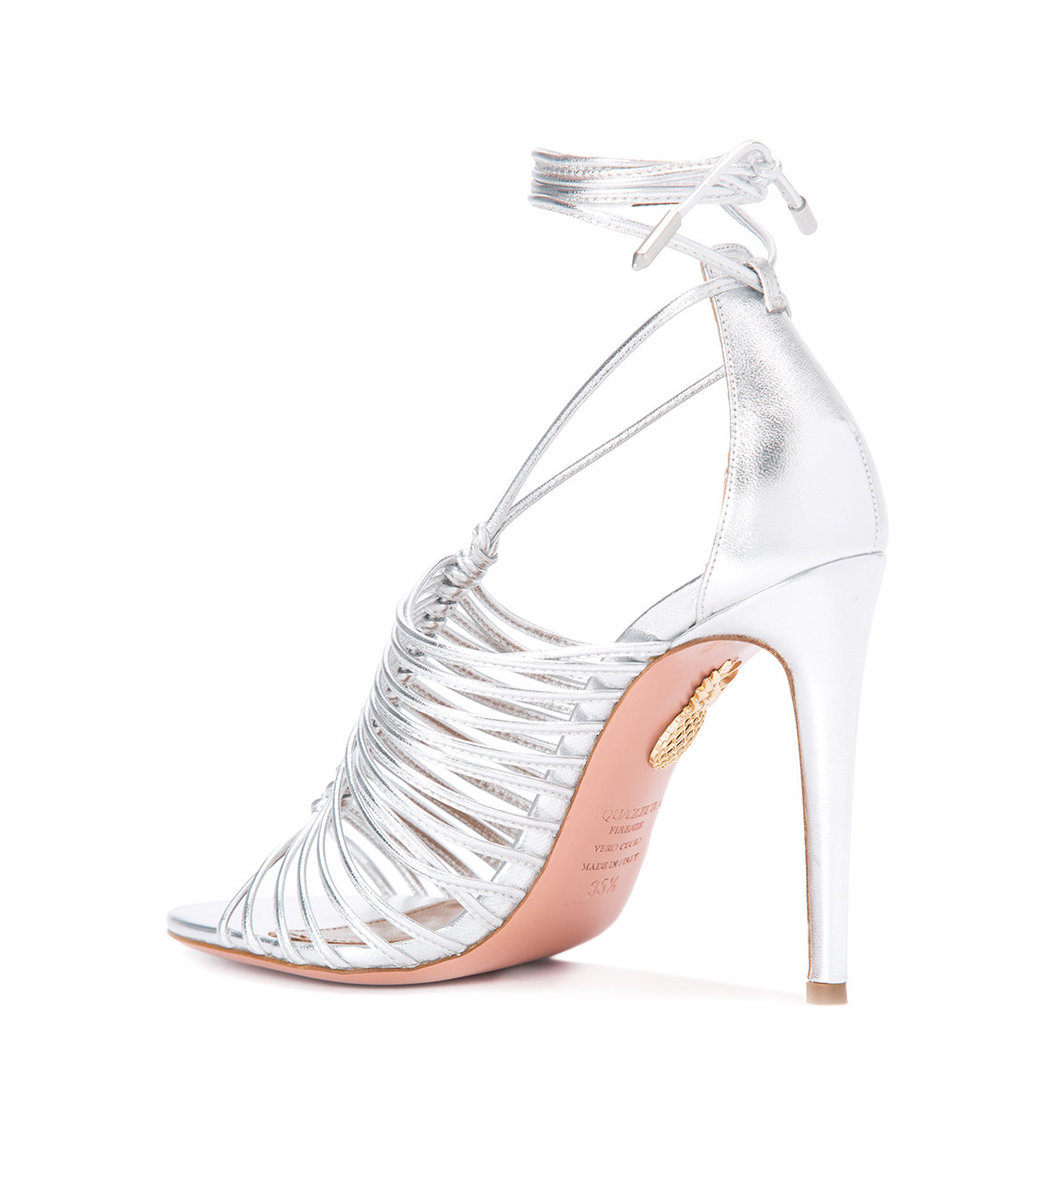 Aquazzura Silver Lace Up Sandal Modesens